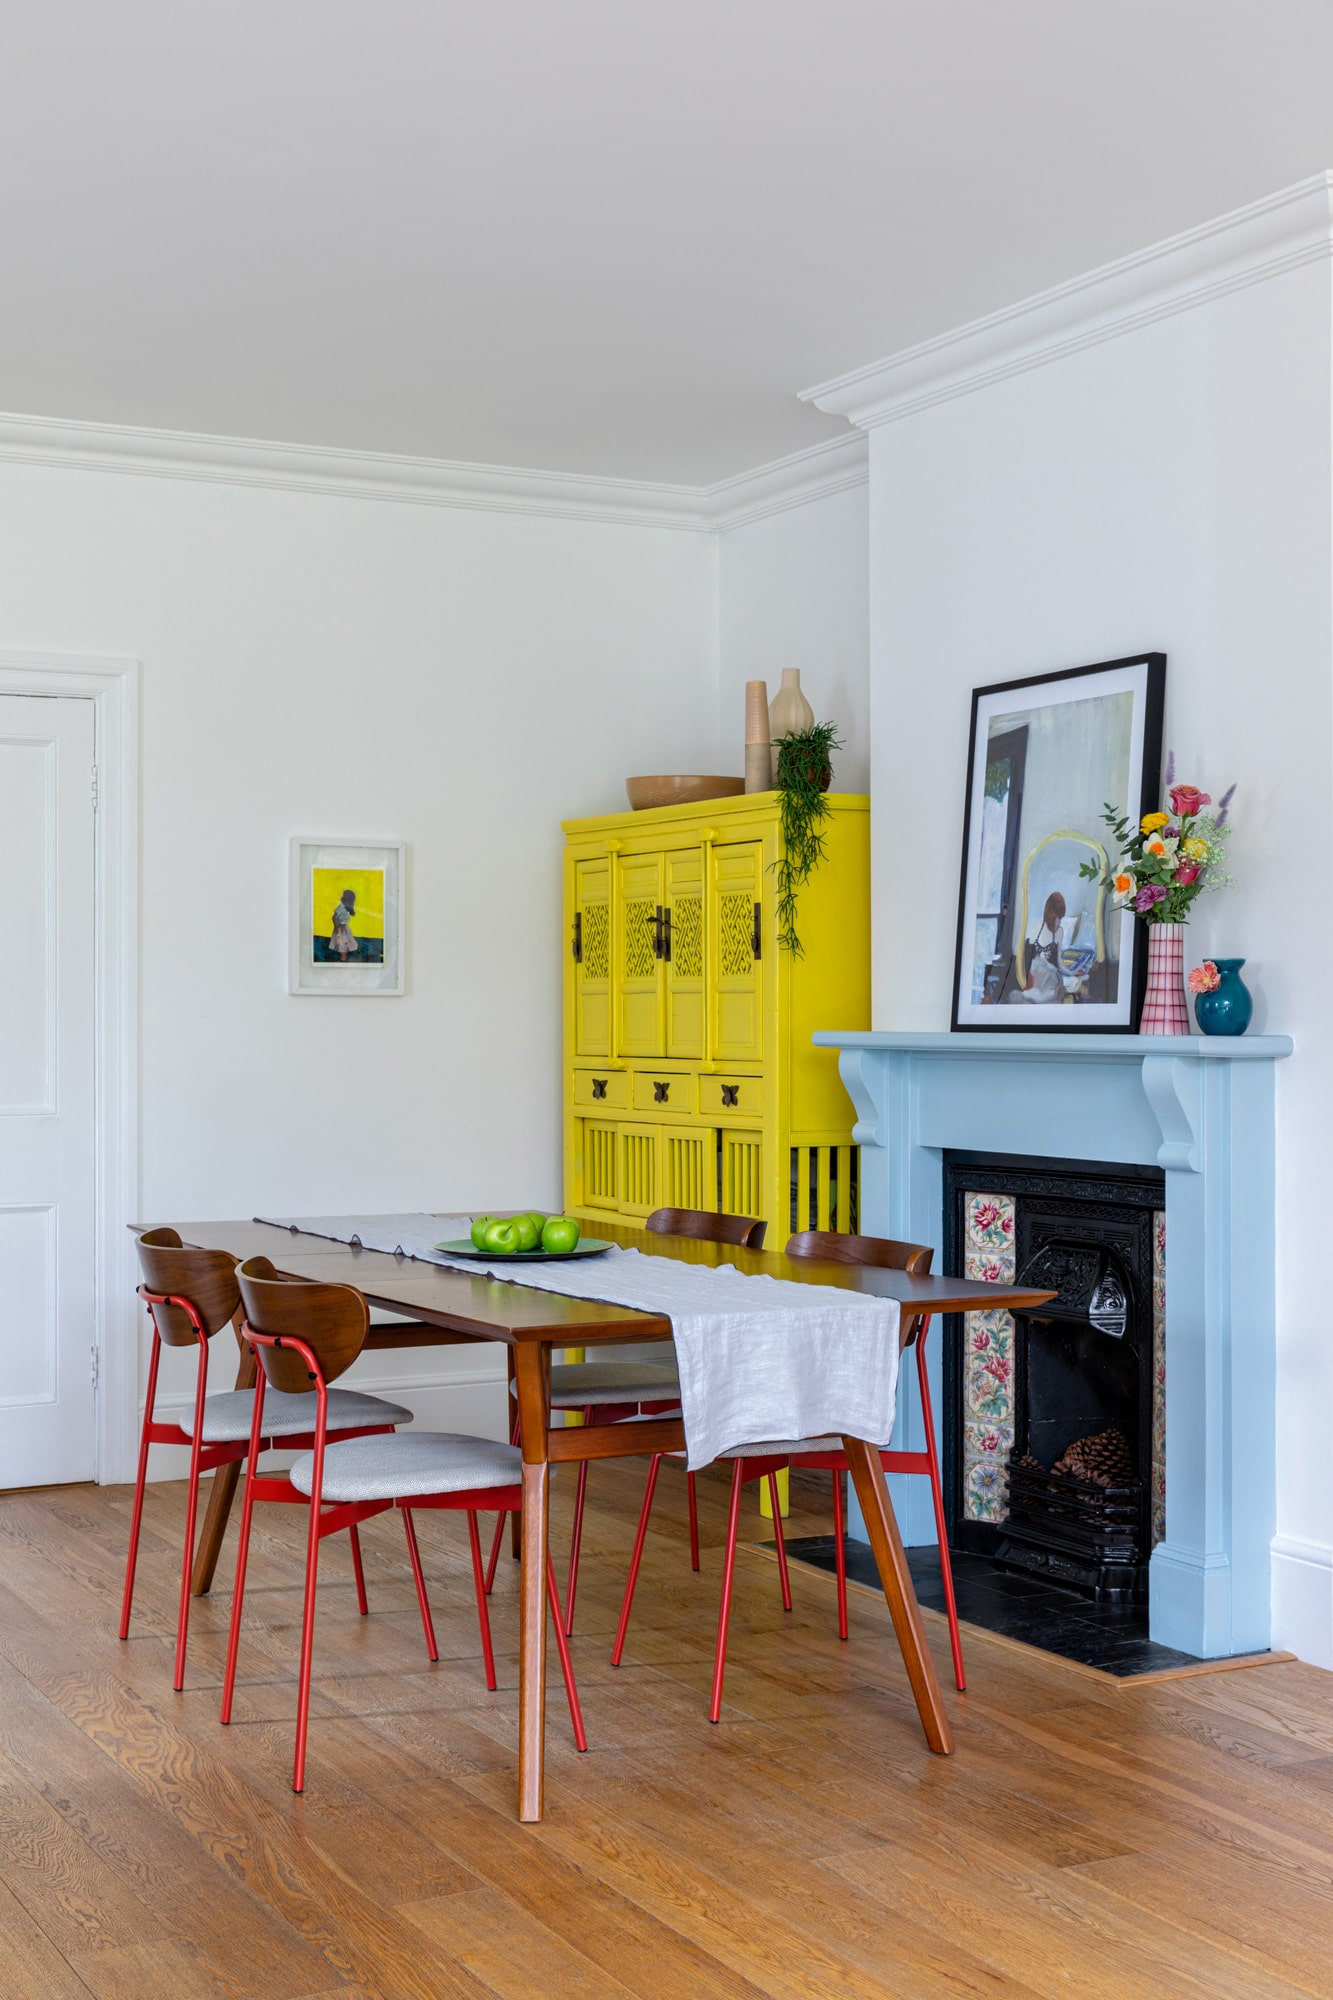 Interior photo of a dining area: blue fireplacewith art and vases on top; yellow cabinet; wooden table and chairs